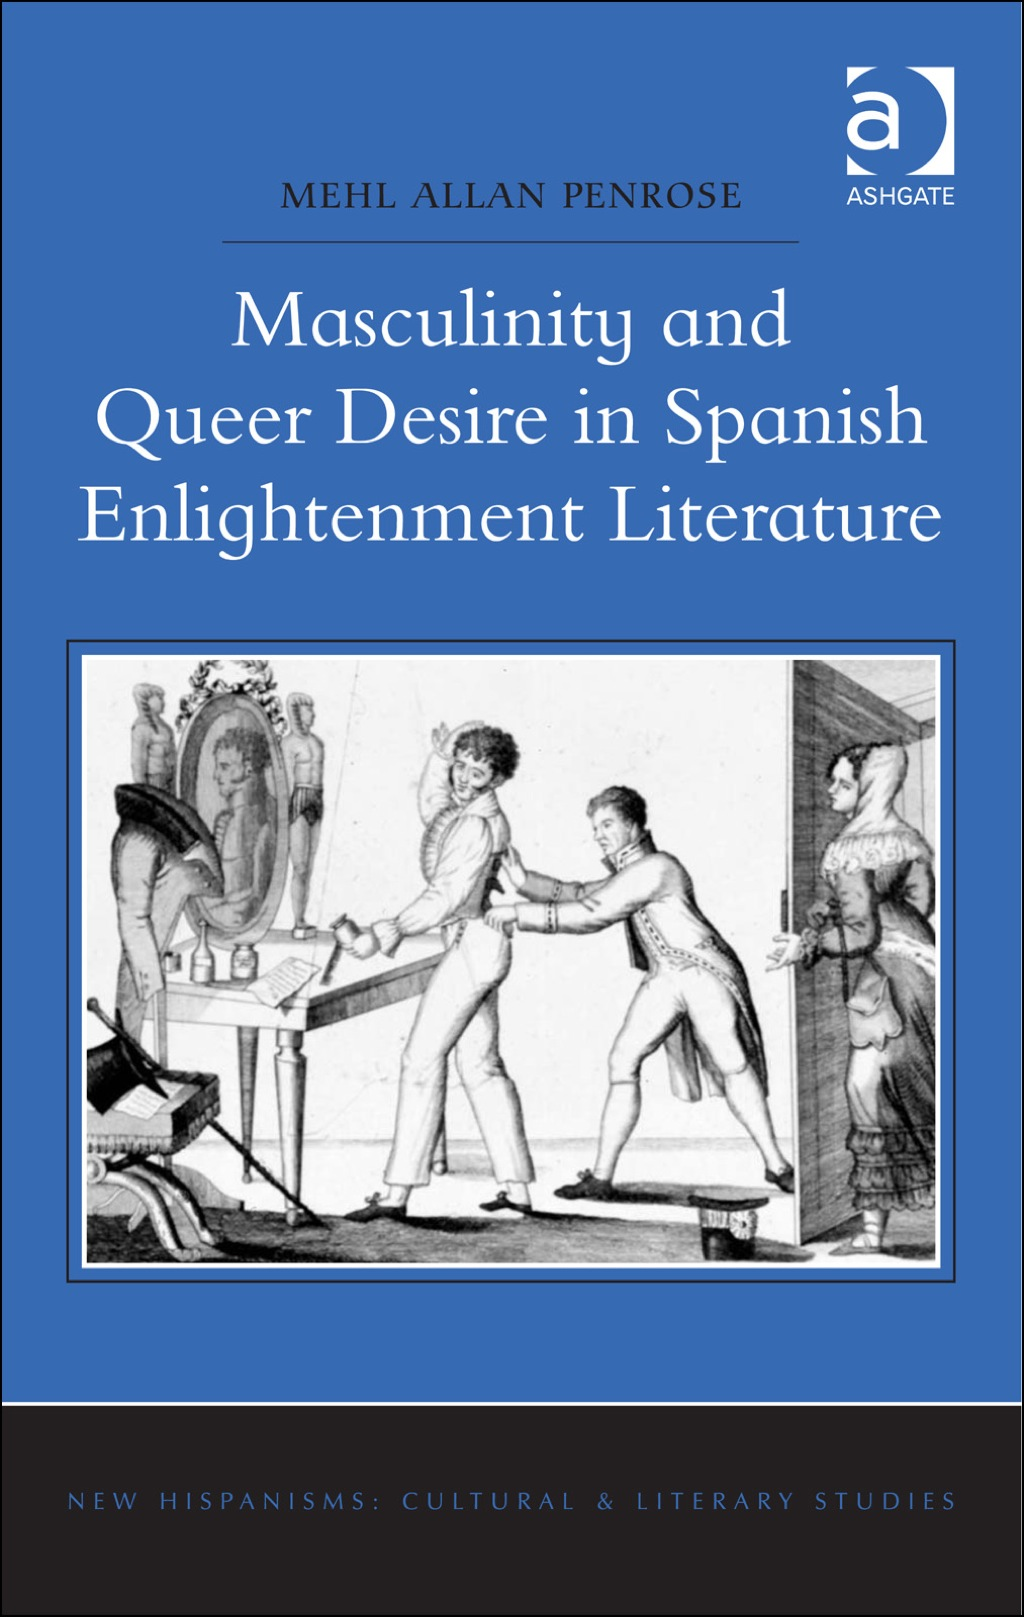 Masculinity and Queer Desire in Spanish Enlightenment Literature (eBook Rental)